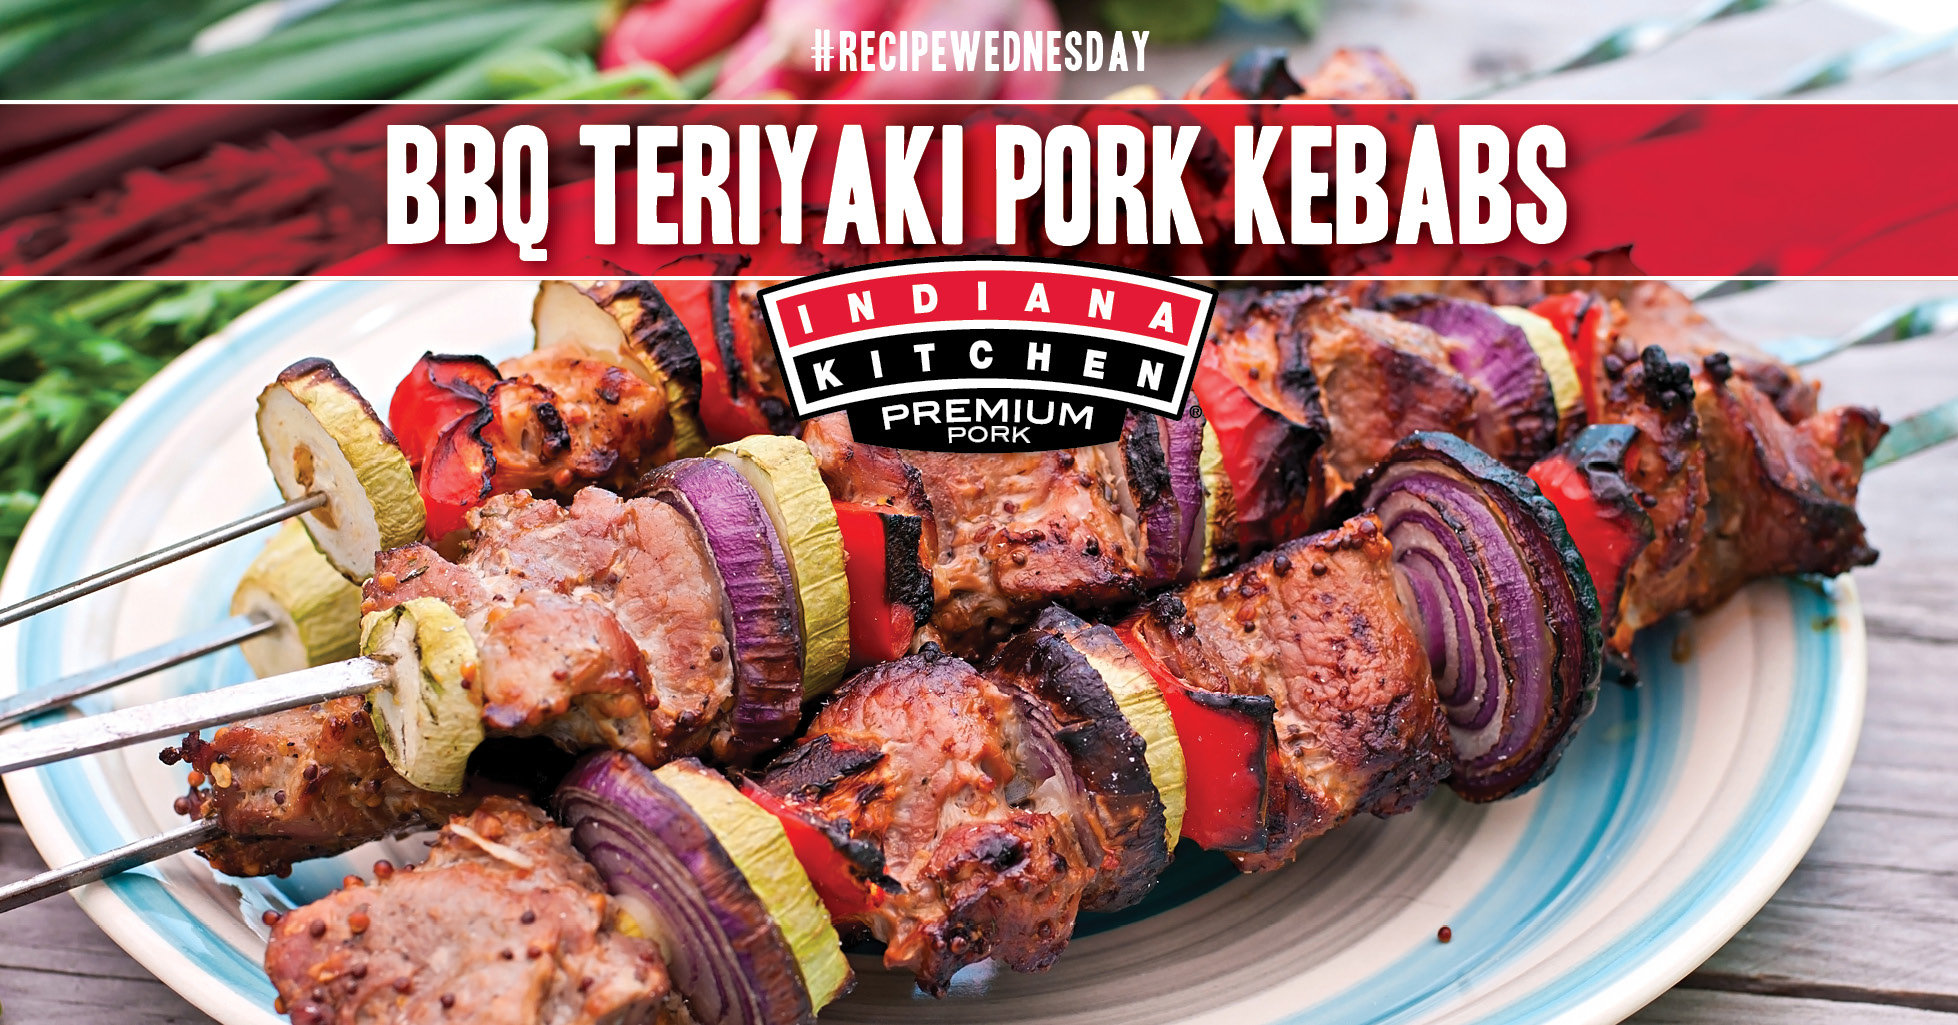 Grilled Pork Kebabs with vegetables